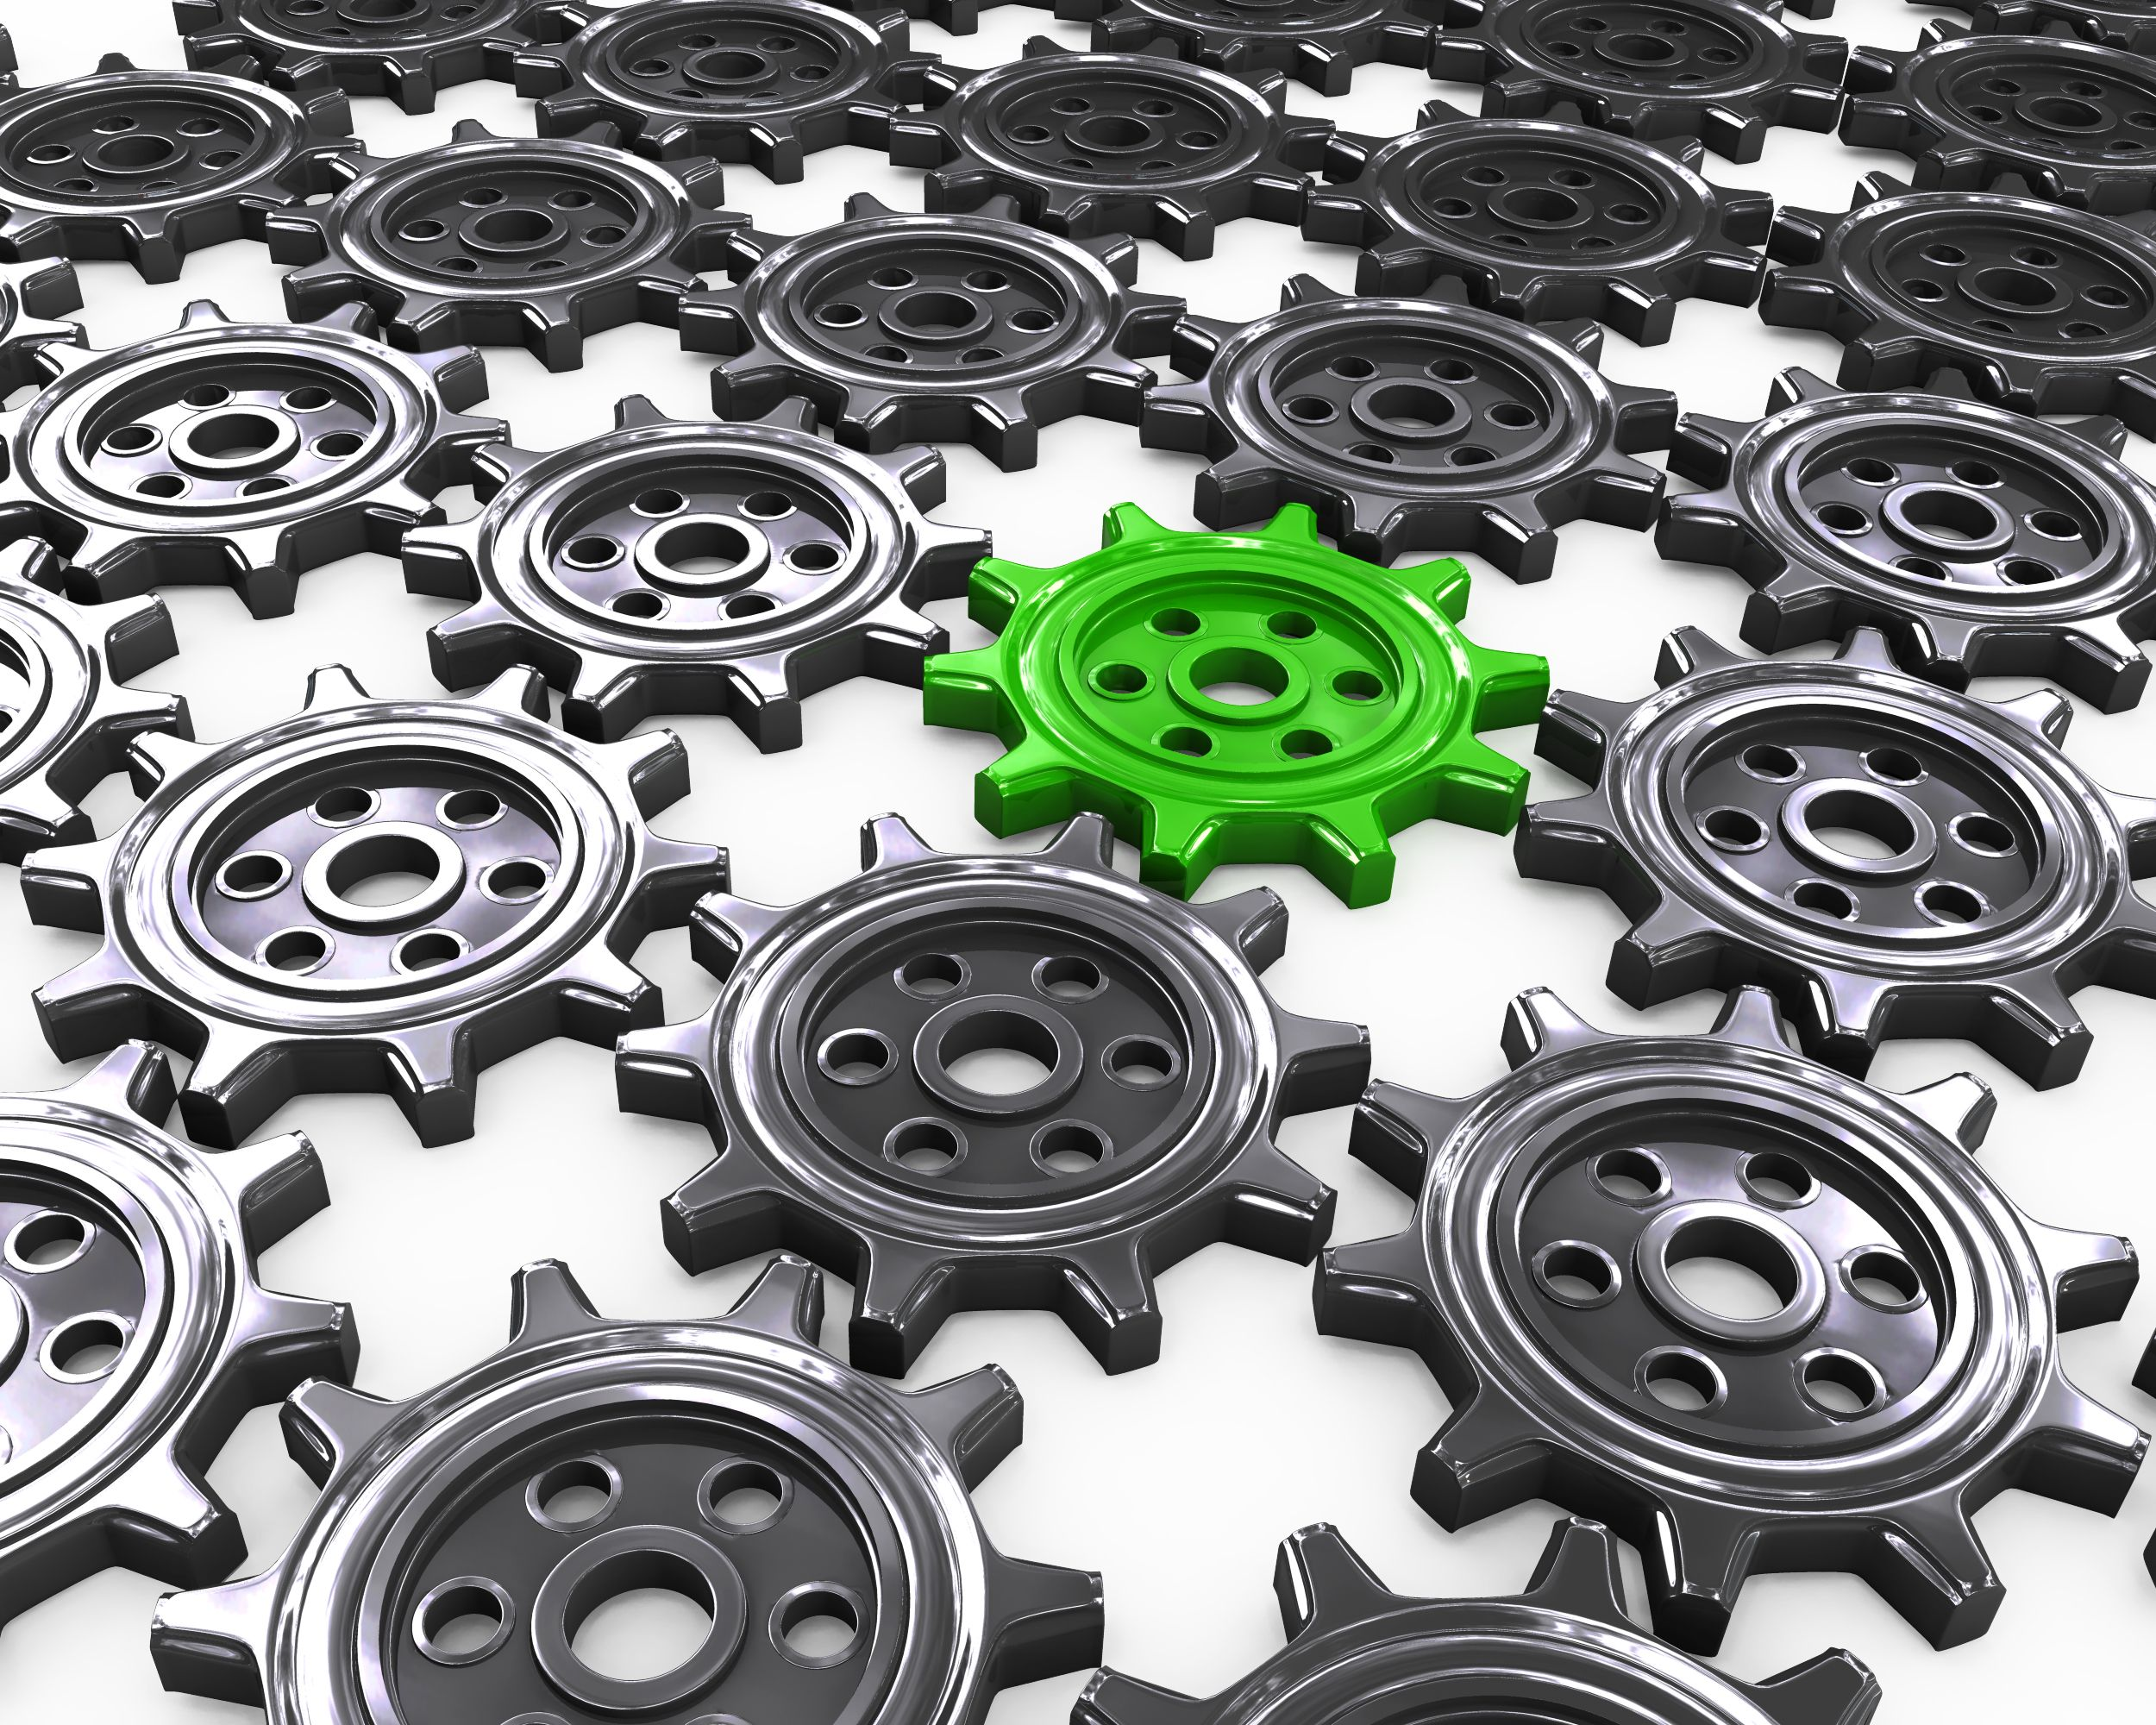 grey_gears_with_one_green_gear_as_leader_stock_photo_Slide01